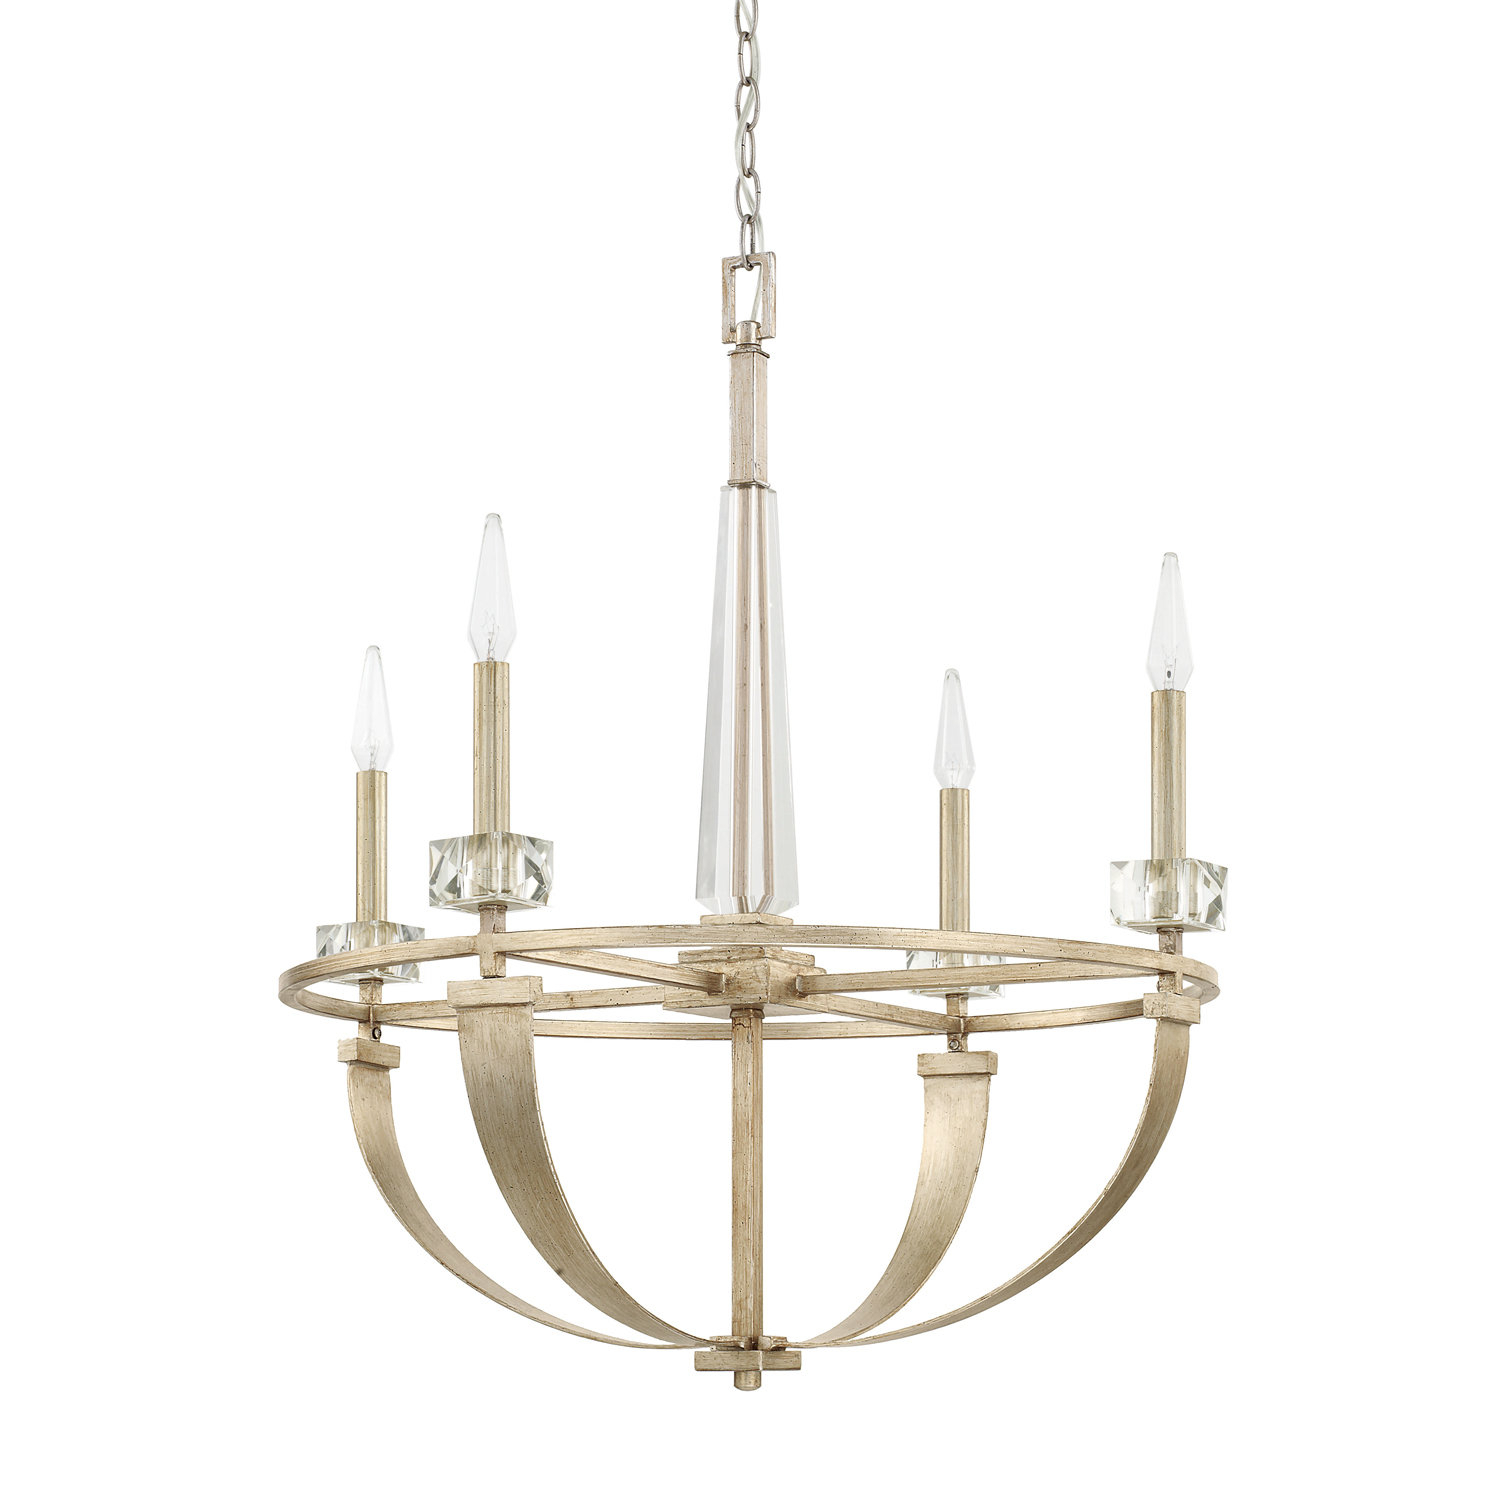 Willington 4-Light Candle-Style Chandelier intended for Camilla 9-Light Candle Style Chandeliers (Image 28 of 30)